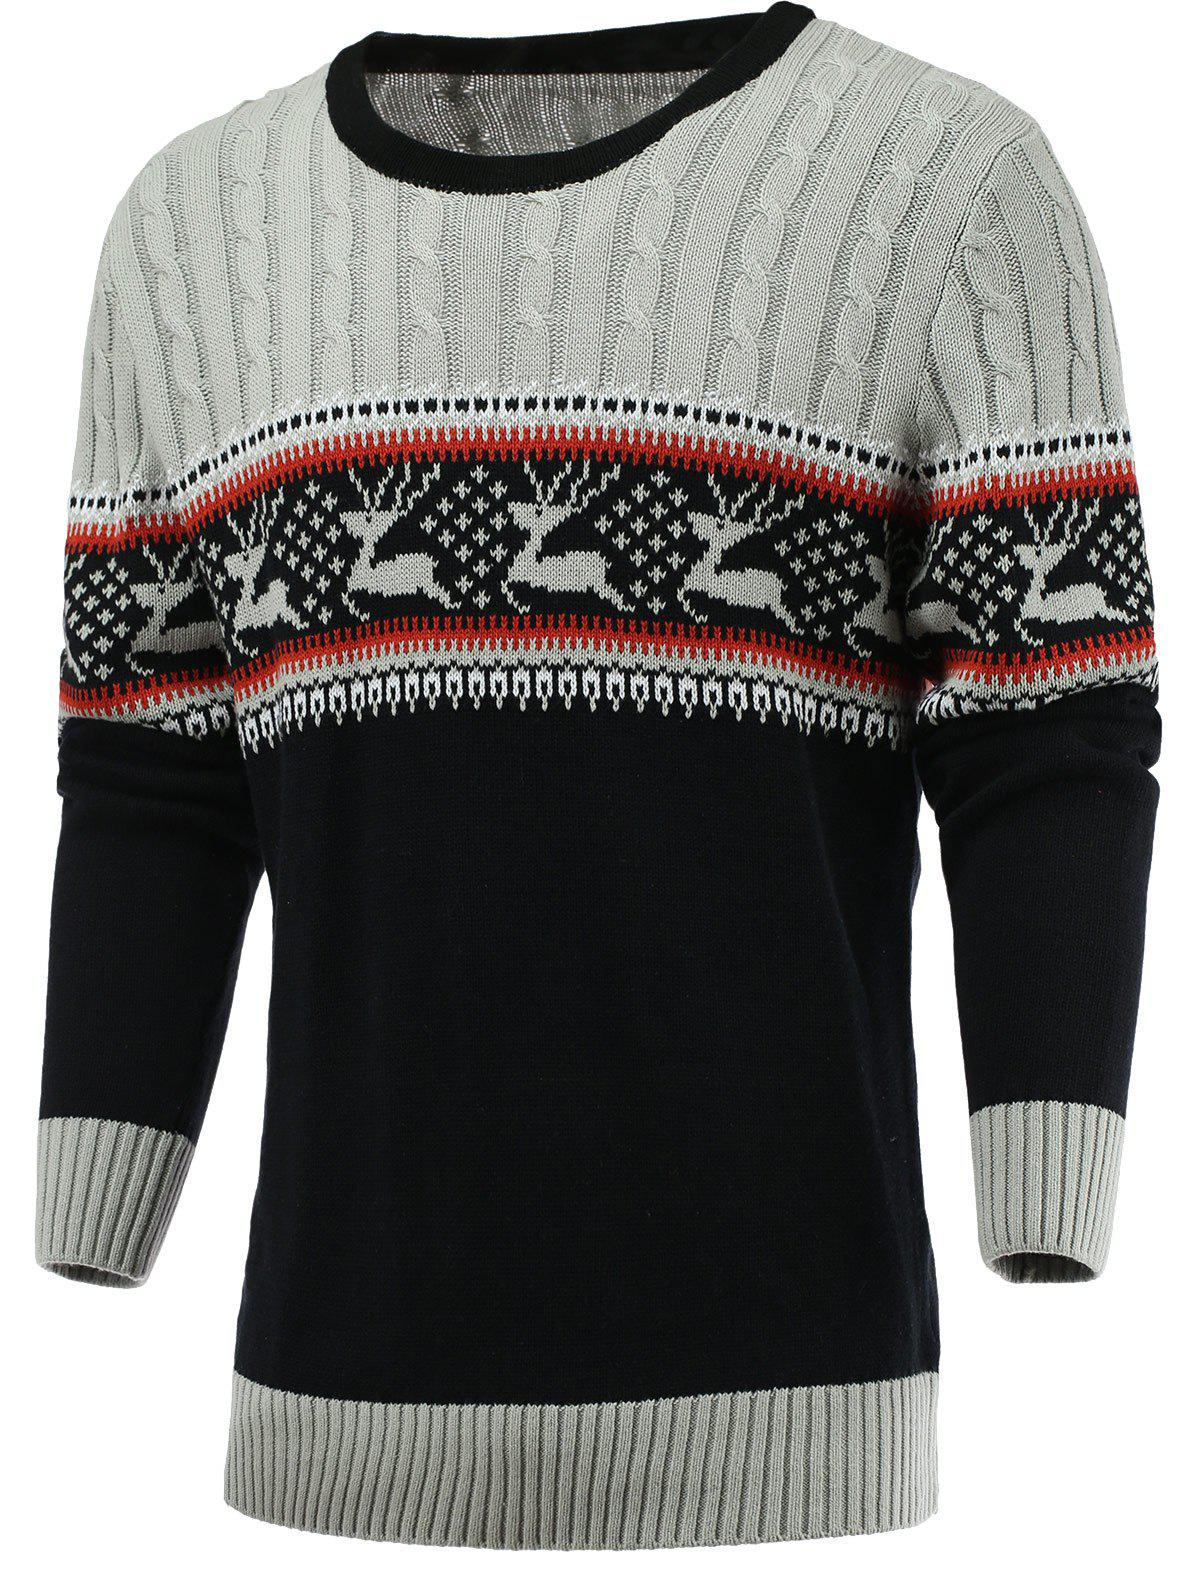 Elk Knitted Color Blocks Spliced Sweater - GRAY 2XL